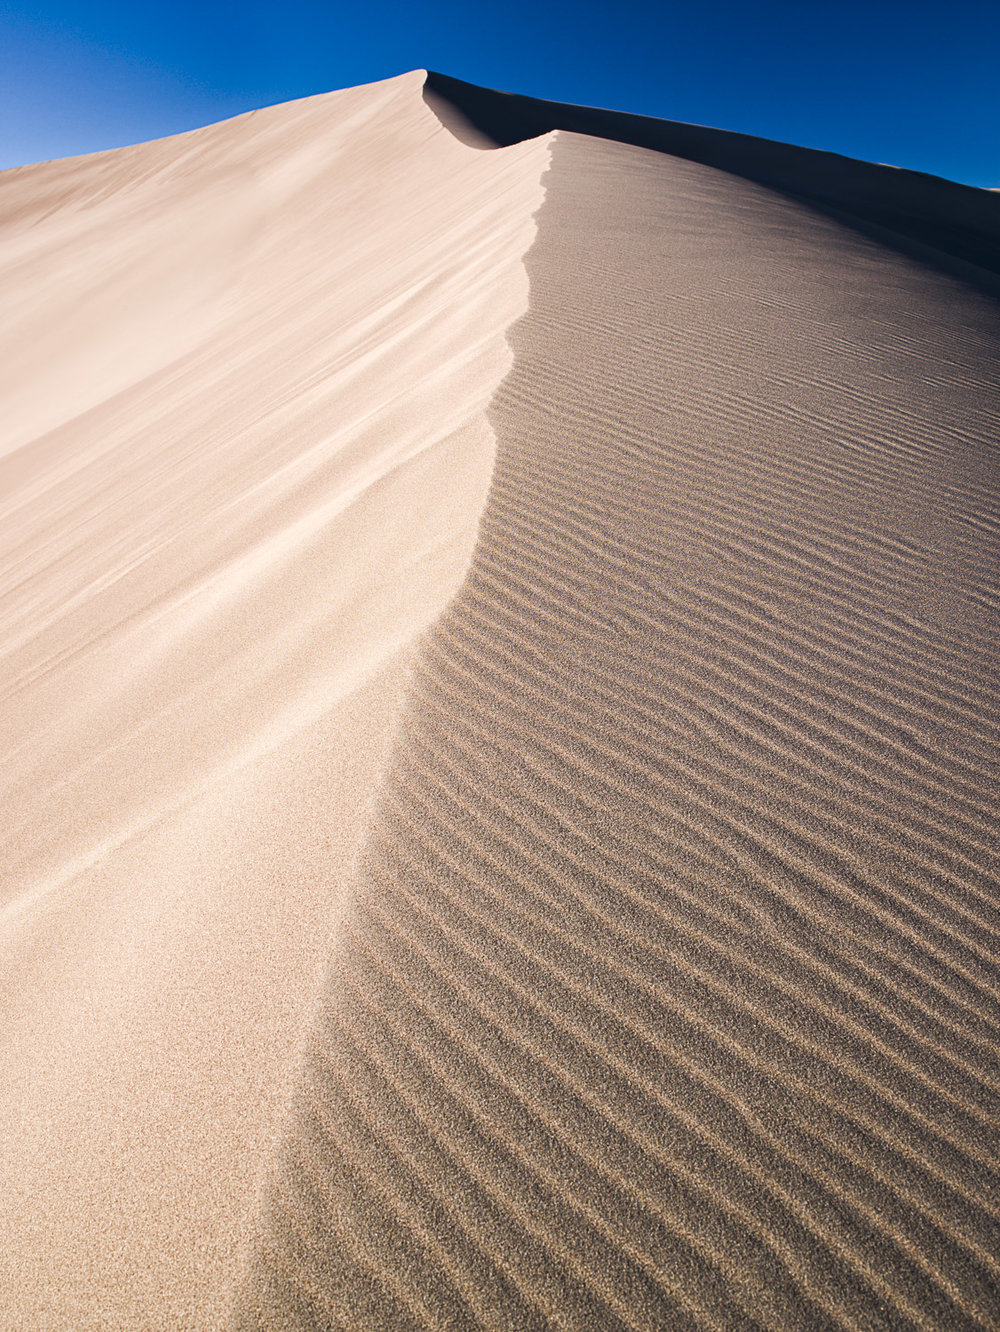 Dune, Great Sand Dunes NP, CO, 2007